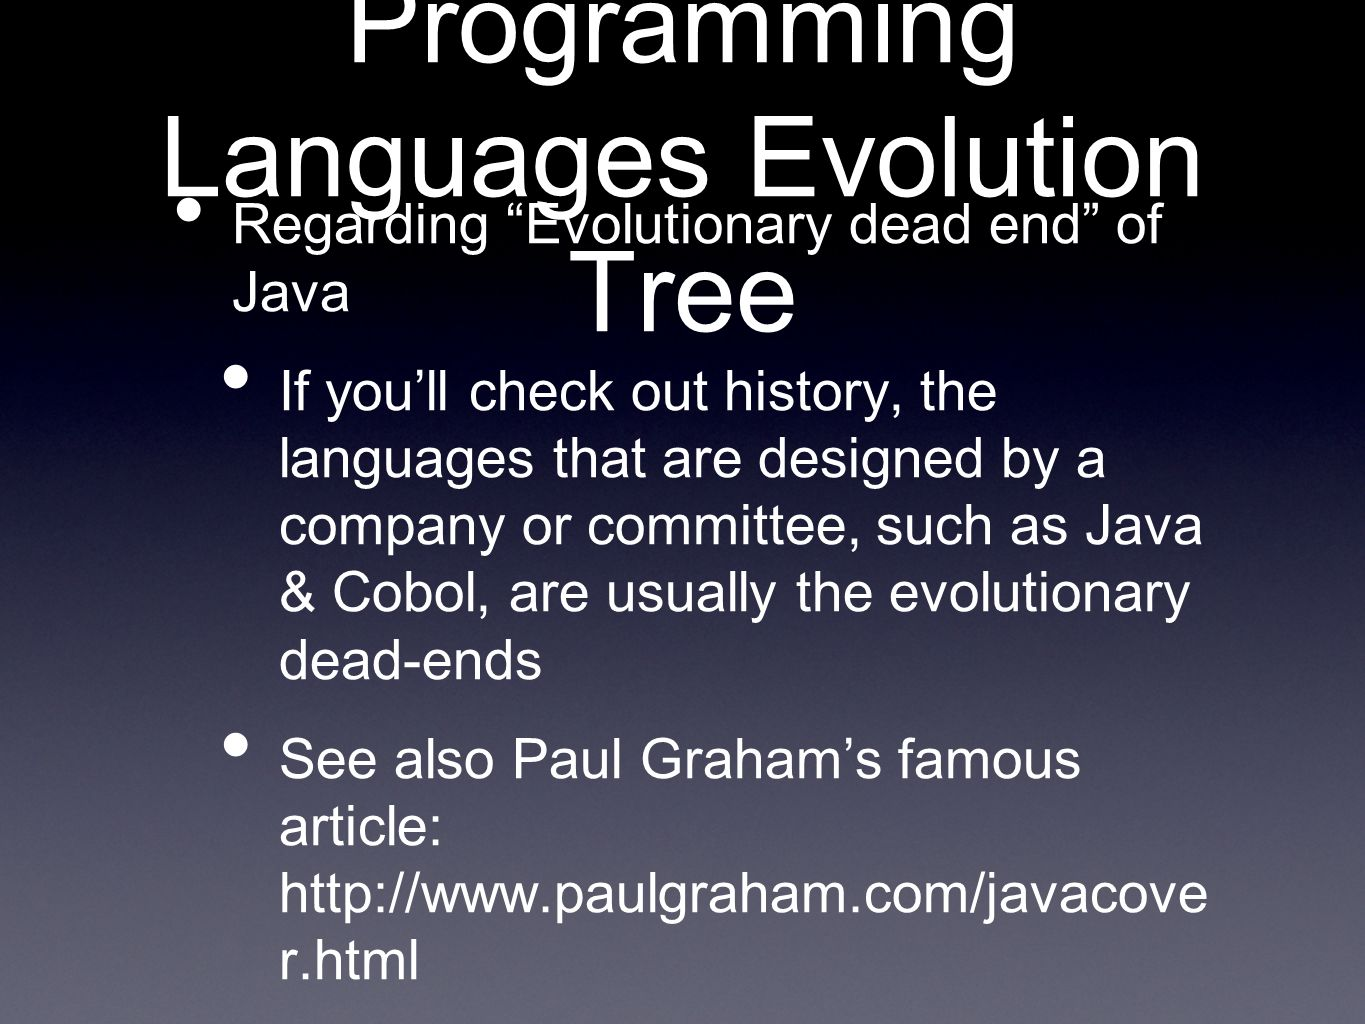 Programming Languages Evolution Tree Regarding Evolutionary dead end of Java If youll check out history, the languages that are designed by a company or committee, such as Java & Cobol, are usually the evolutionary dead-ends See also Paul Grahams famous article:   r.html